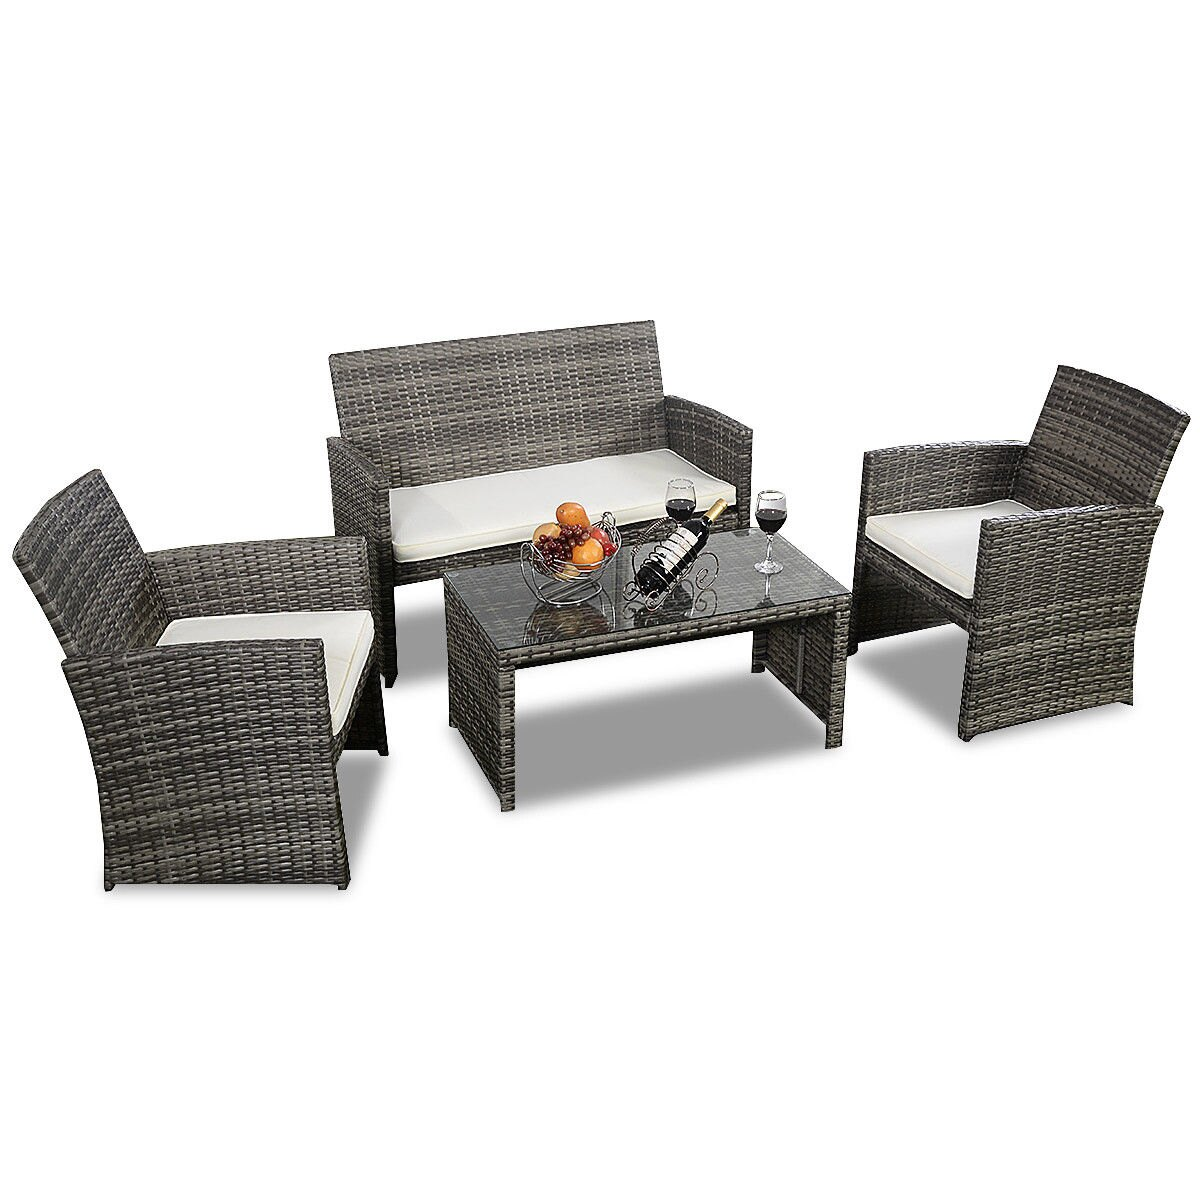 Costway 4 Pc Rattan Patio Furniture Set Garden Lawn Sofa Cushioned Seat Mix  Gray Wicker 2